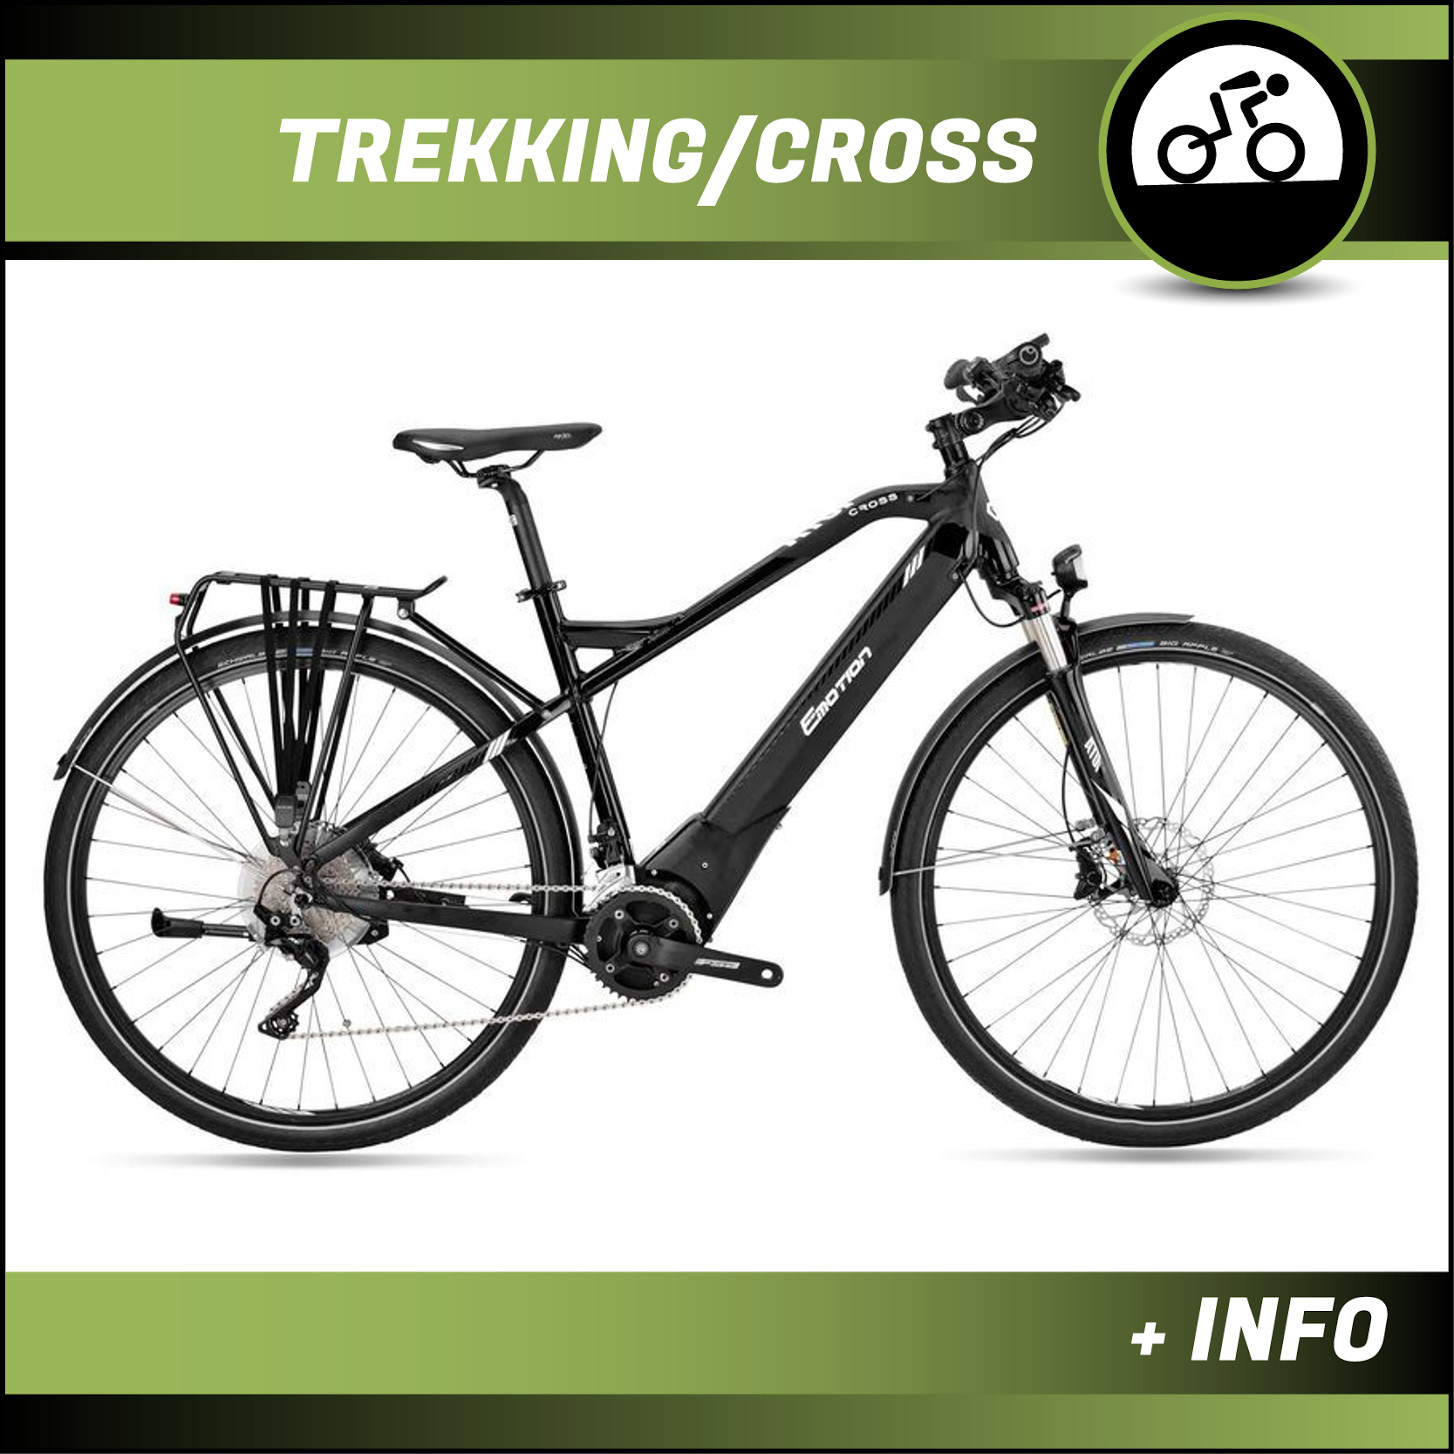 trekking/cross